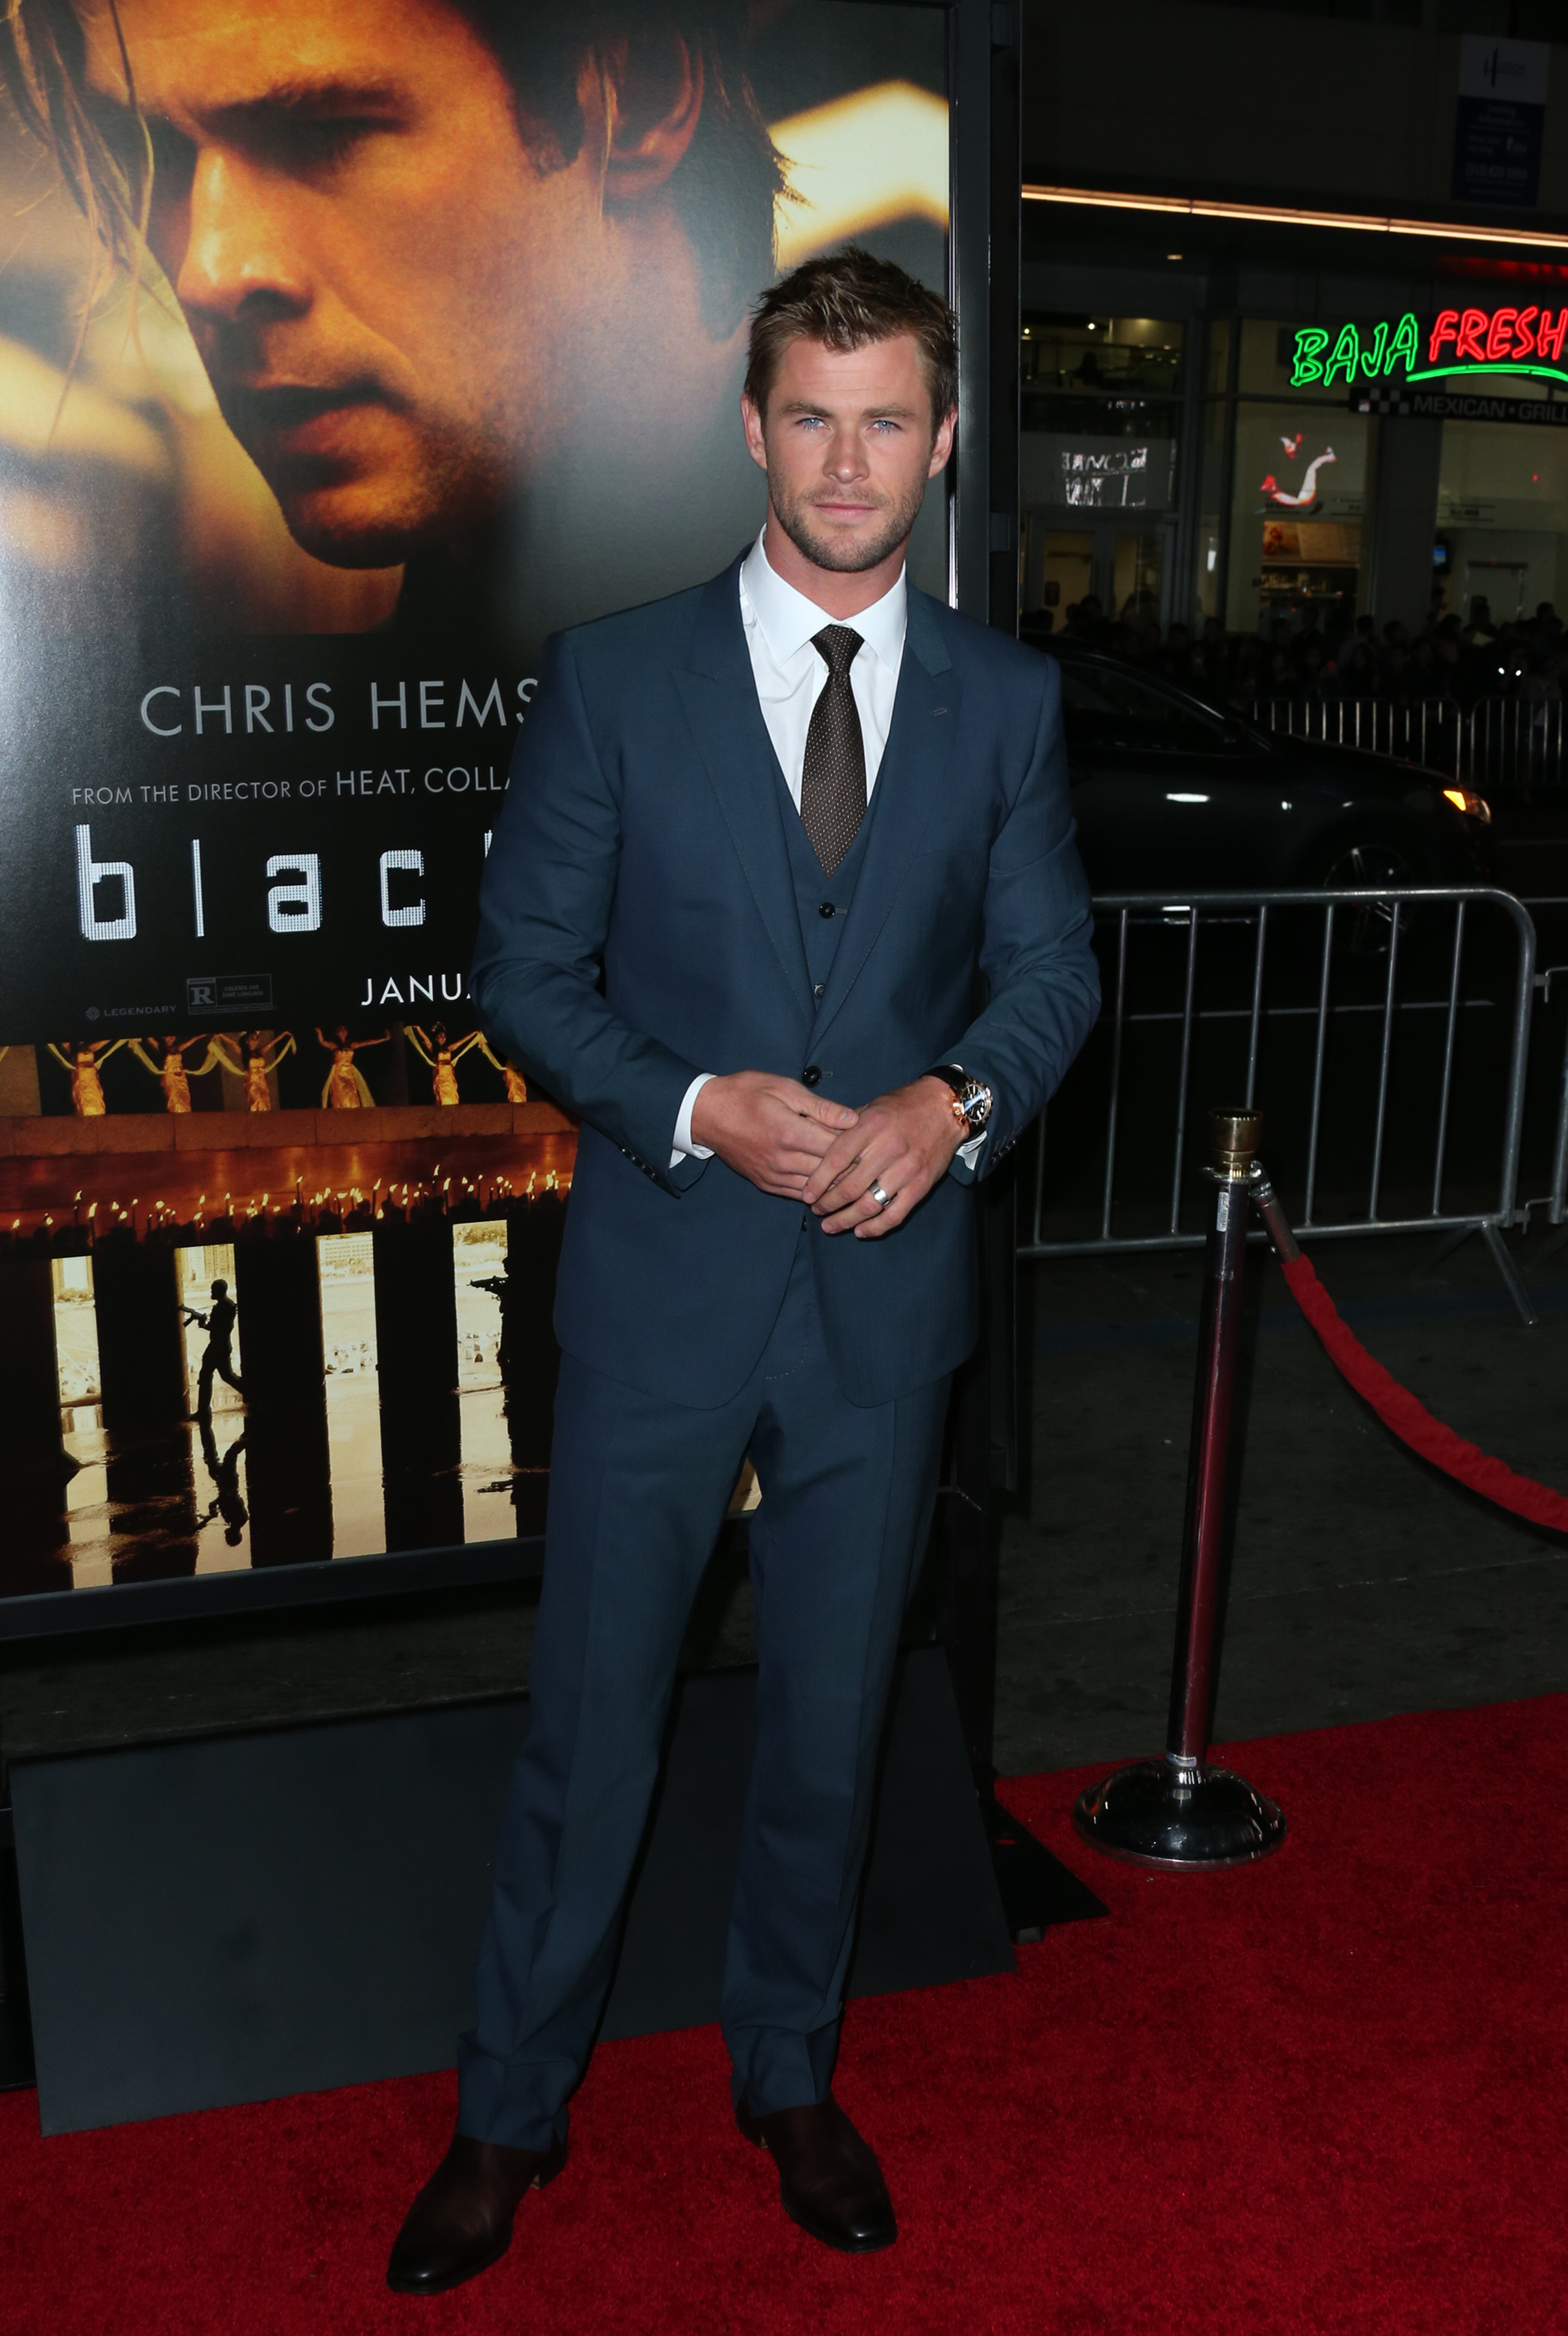 chris hemsworth blackhat